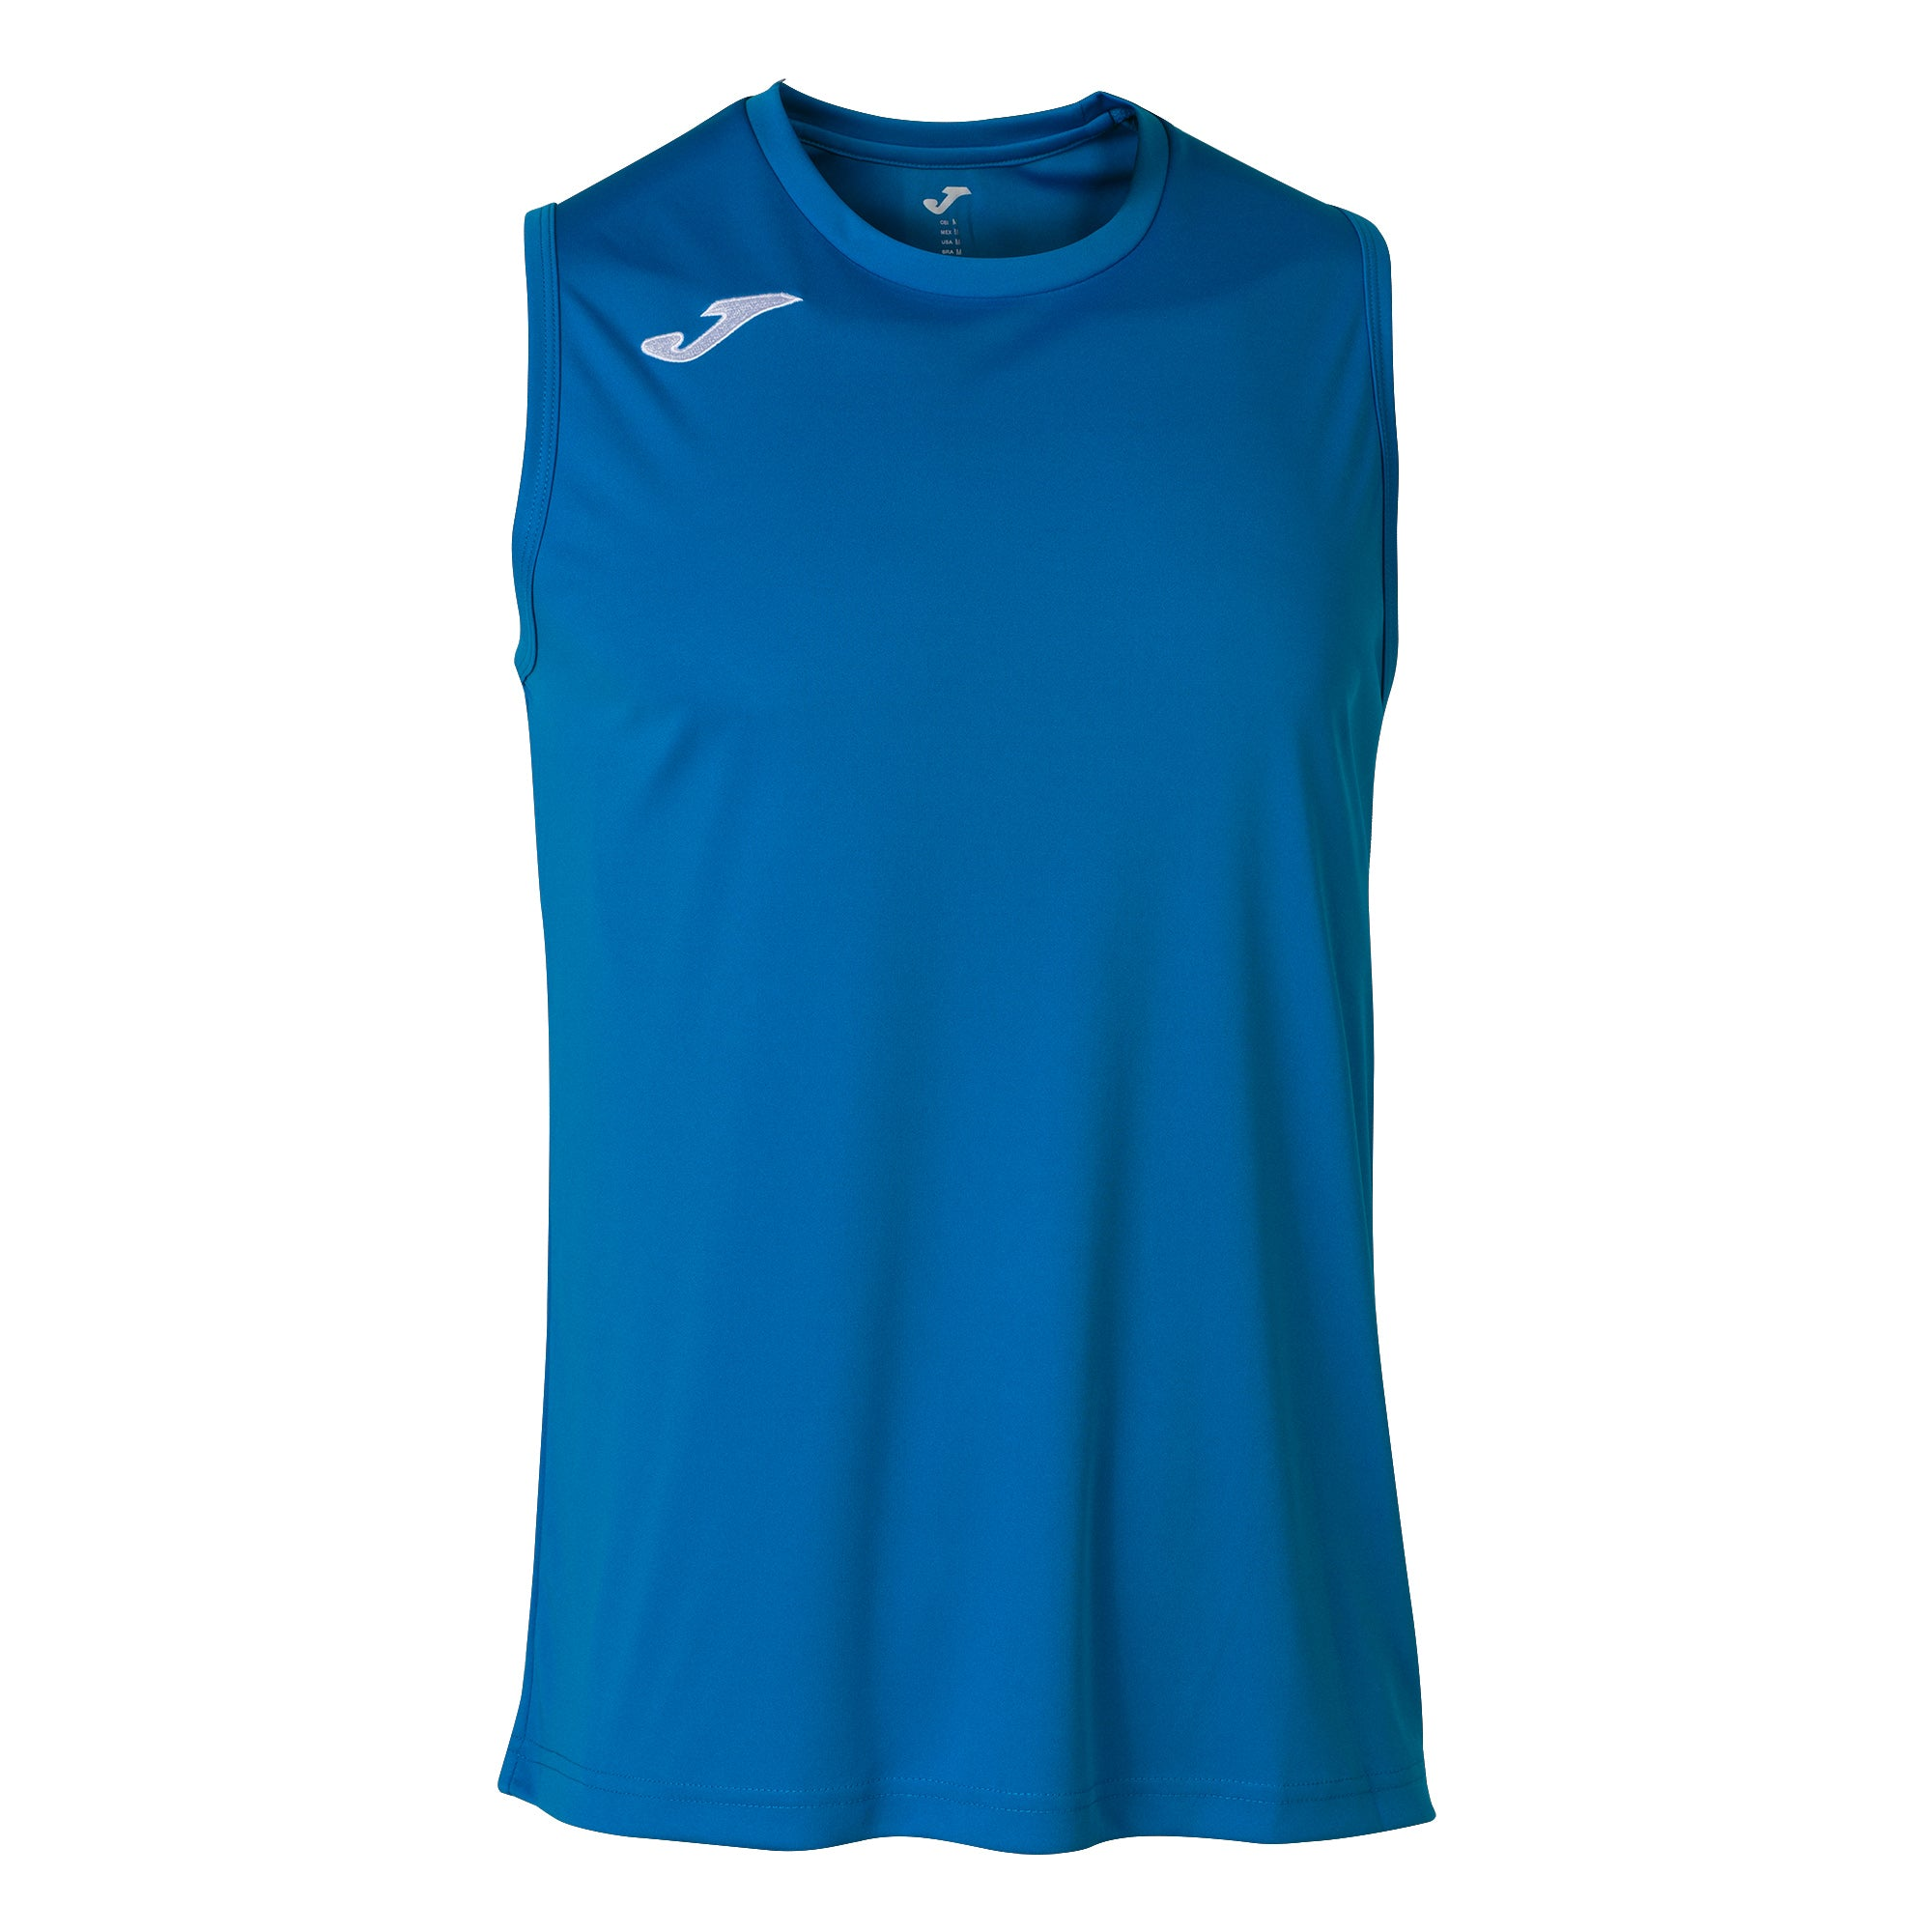 Teamwear - Joma Combi Sleeveless - Royal Blue - JO-101660-700